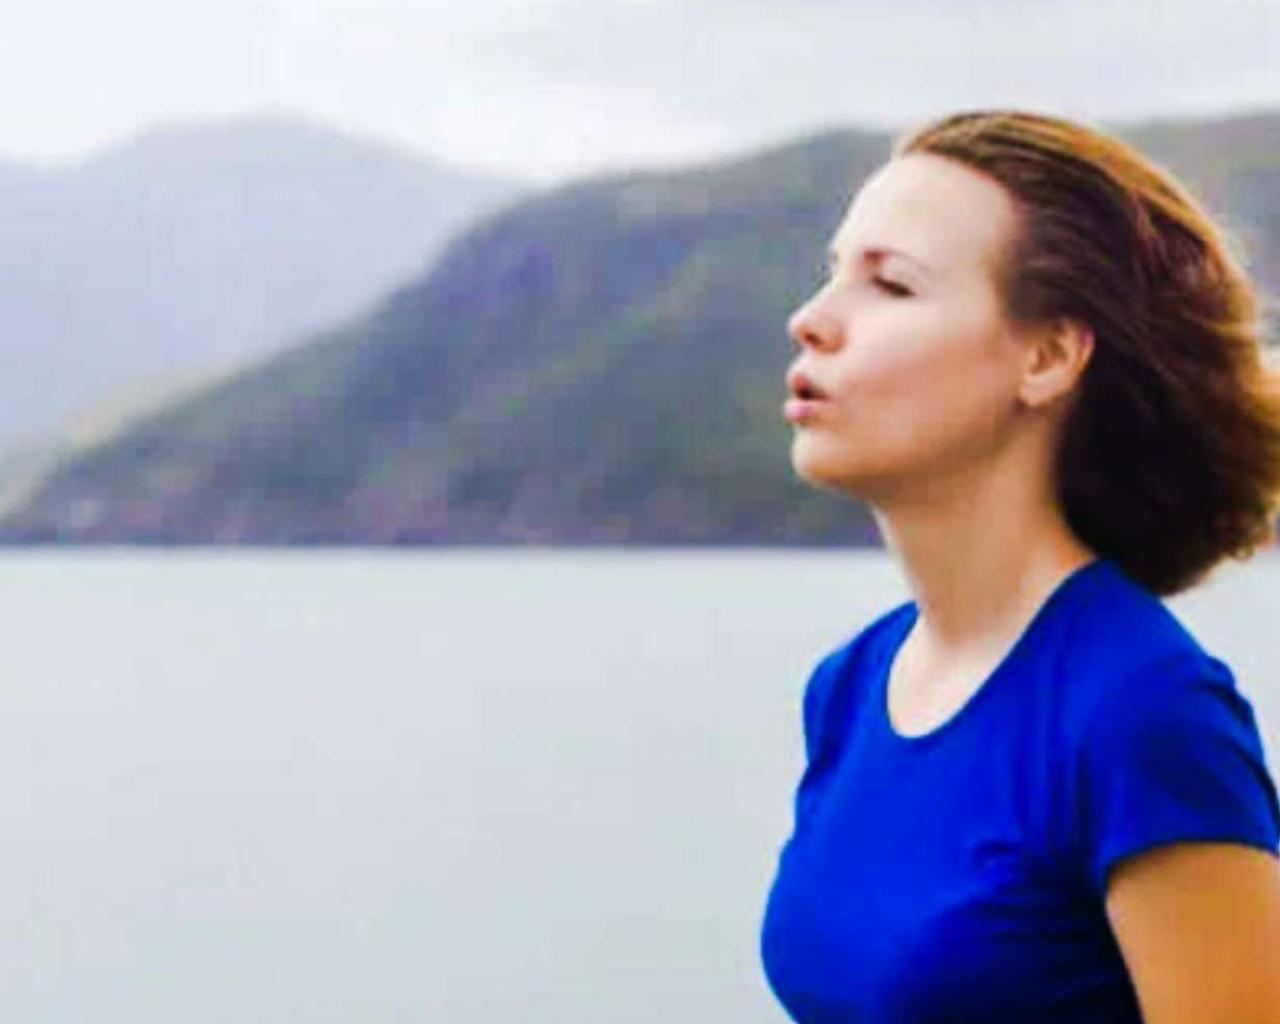 Why is it difficult to breathe when we do exercise?